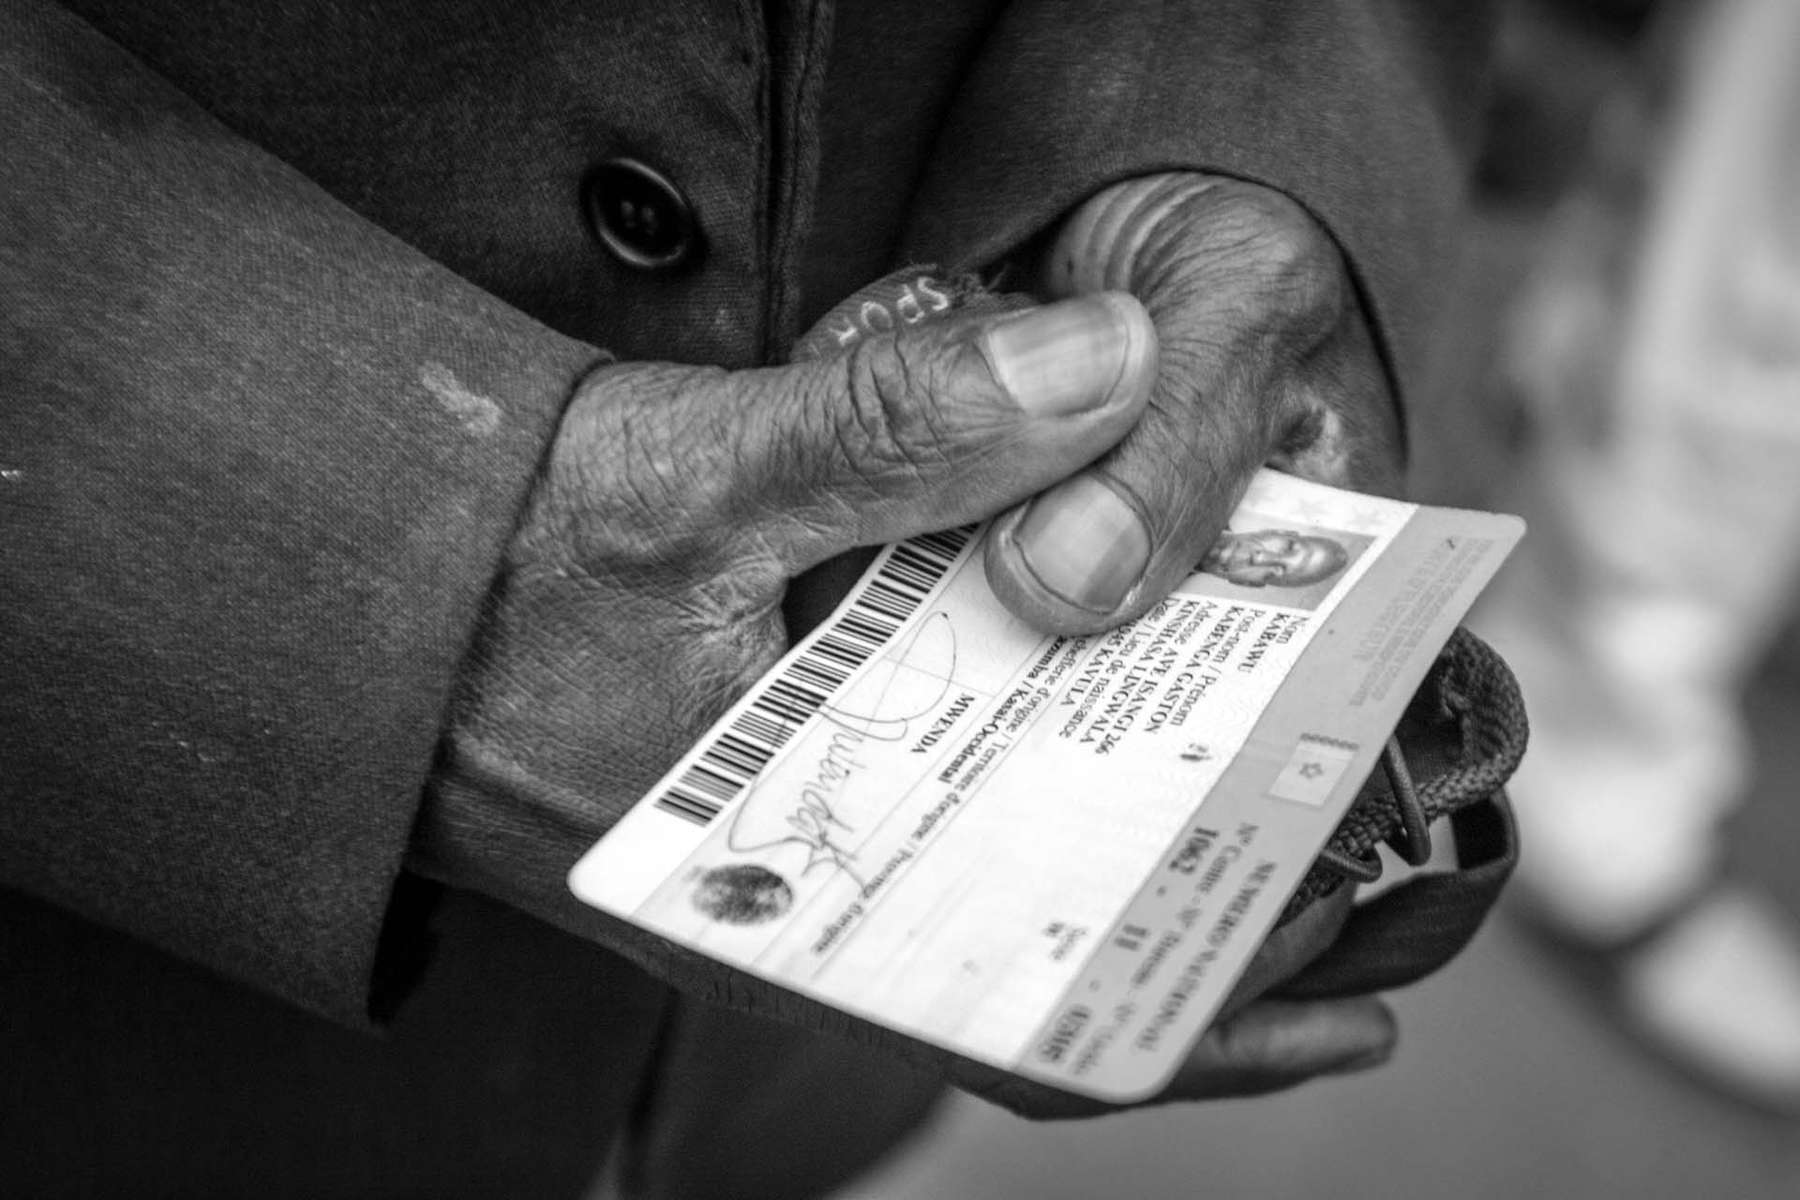 Grasping his voter registration card, Congolese man waits in line to cast his vote outside polling station in Kinshasa. For many Congolese, the voter registration card became their first piece of identification.